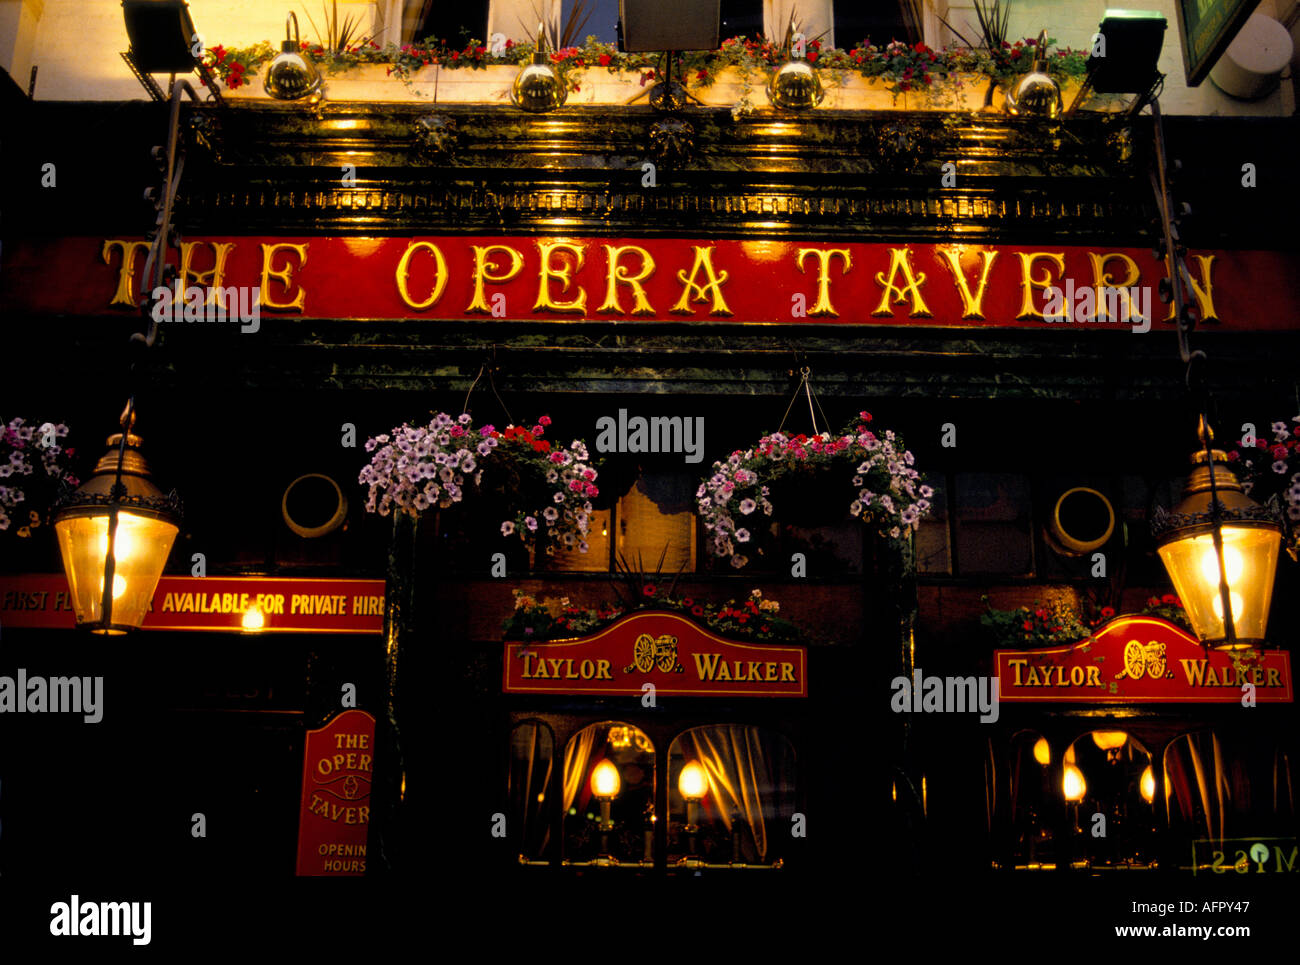 LONDON THEATRE LAND THE OPERA TAVERN PUB IN THE CENTER OF THEATRE LAND HOMER SYKES - Stock Image